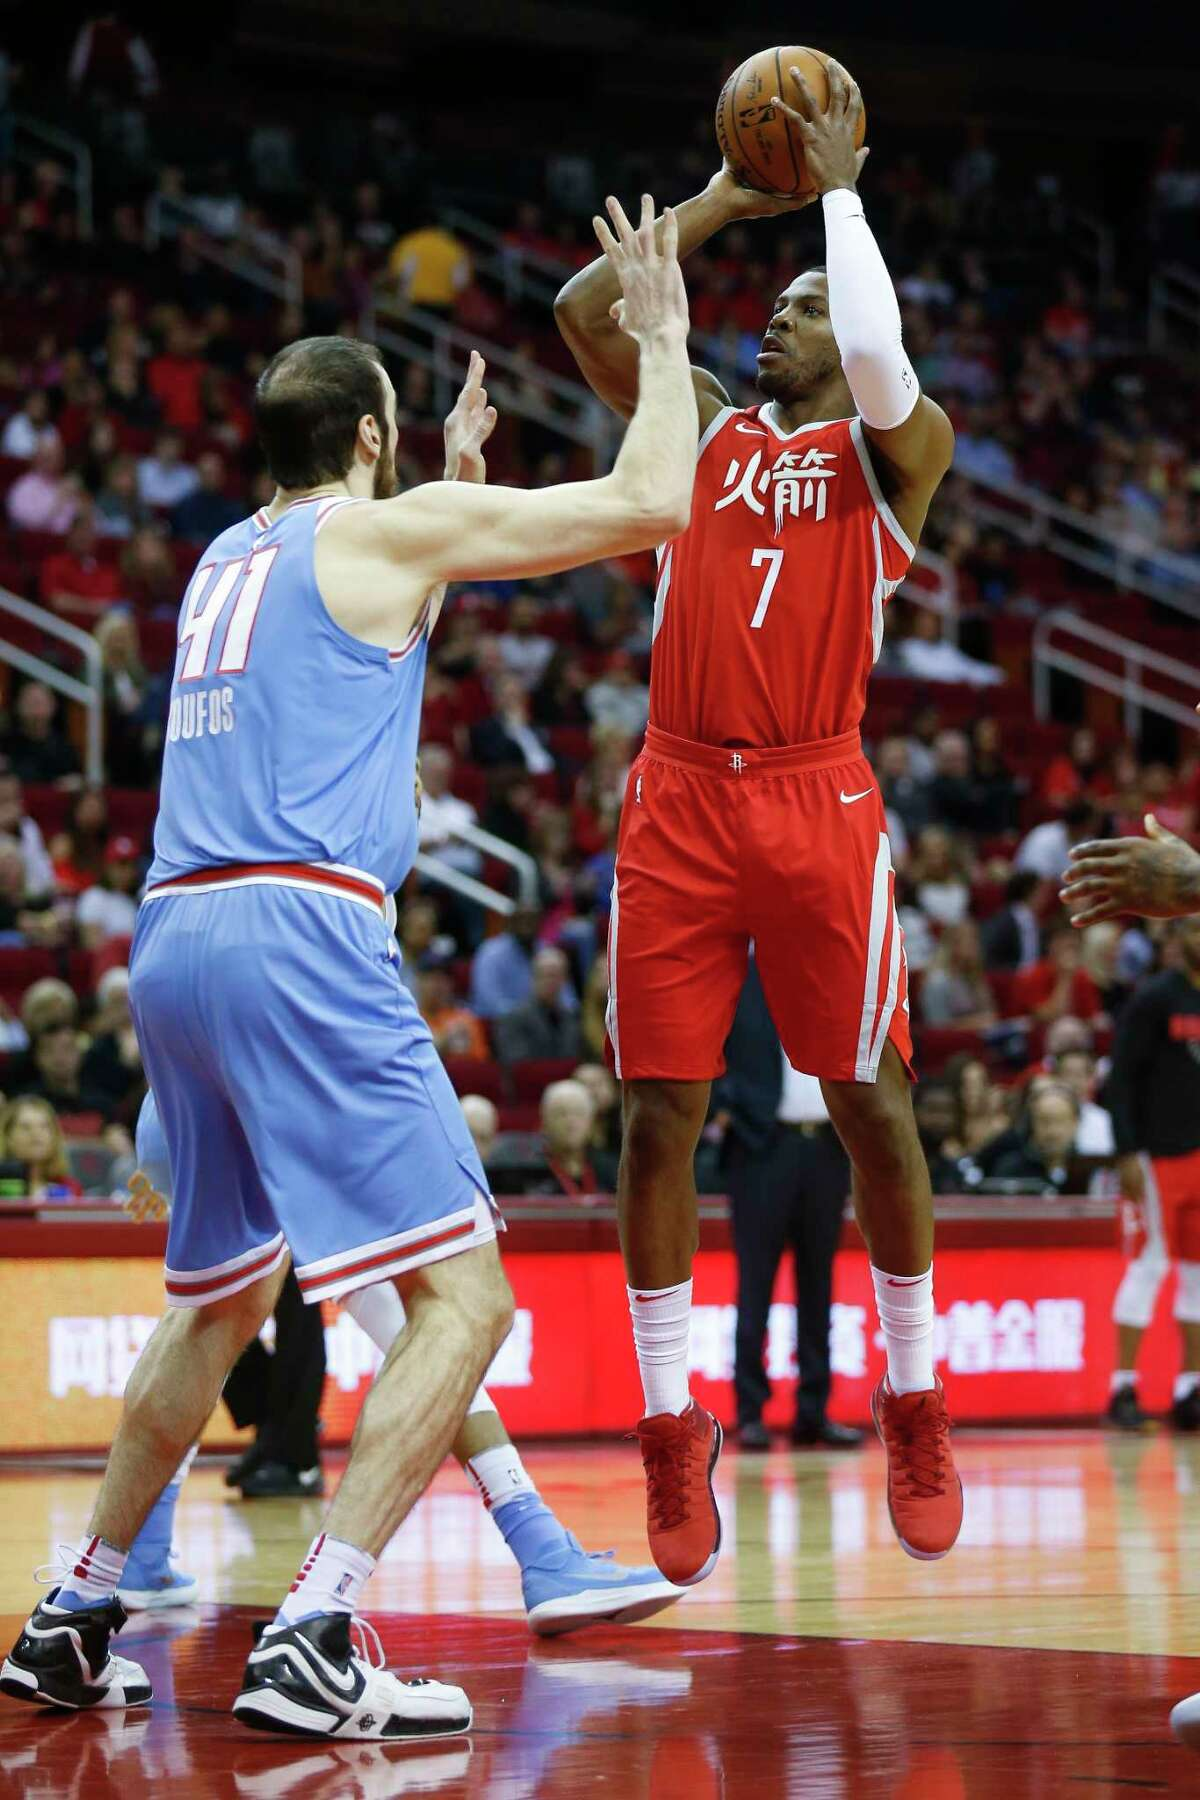 Joe Johnson, right, averaged 17.1 points and 5.1 rebounds in his full season with Mike D'Antoni in Phoenix. This season, Johnson averages 5.9 points and 2.1 rebounds.